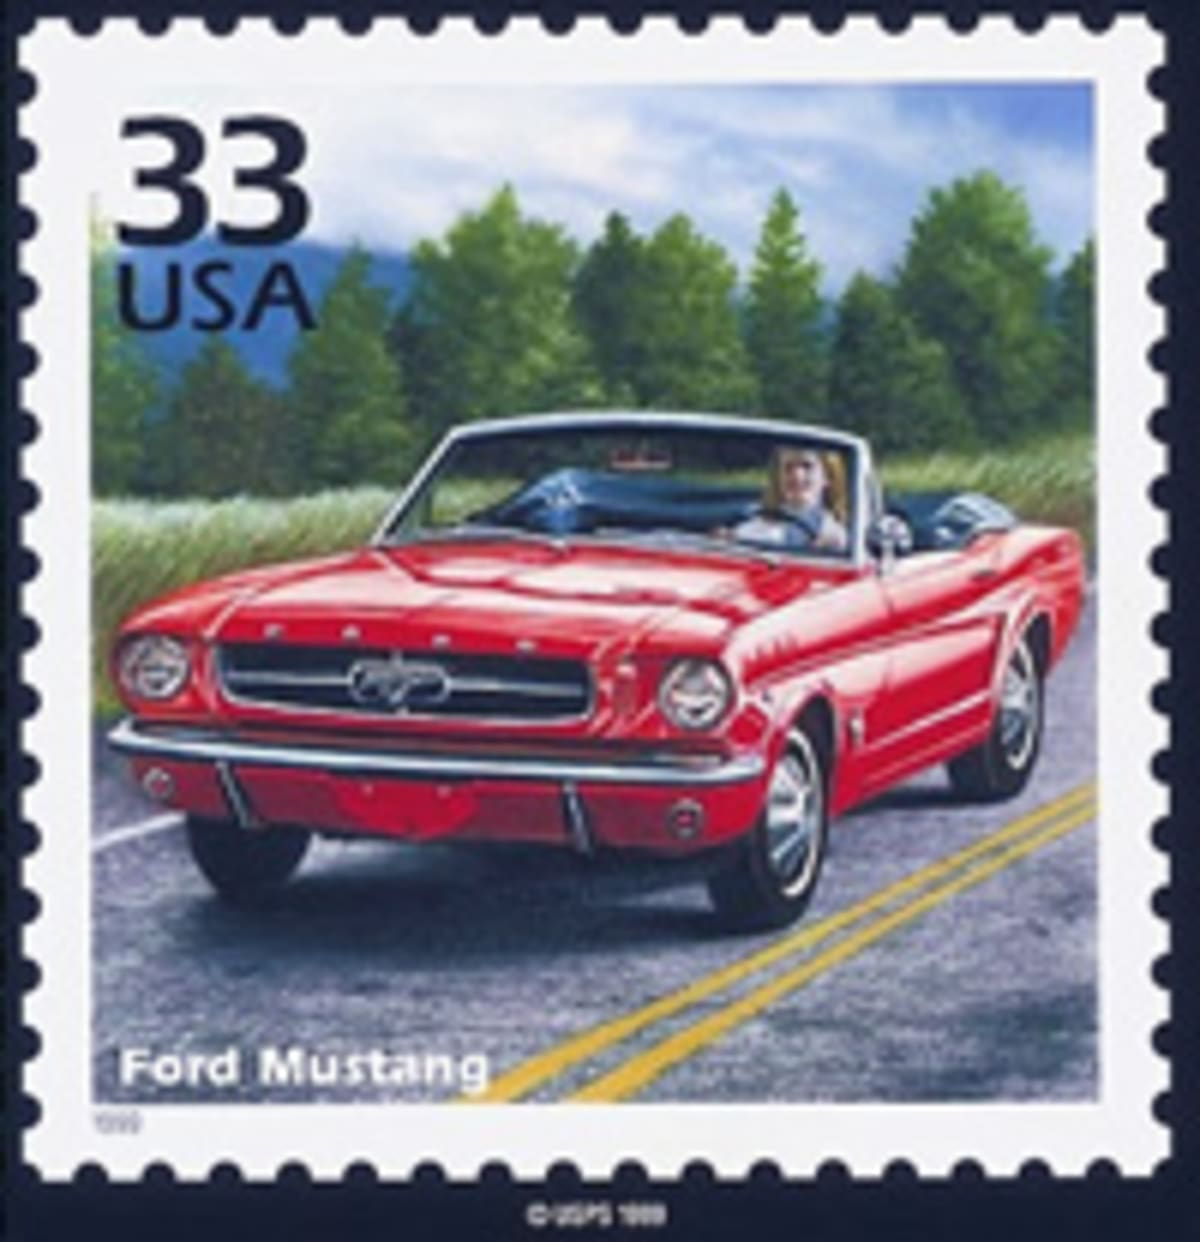 Ford Mustang Stamp